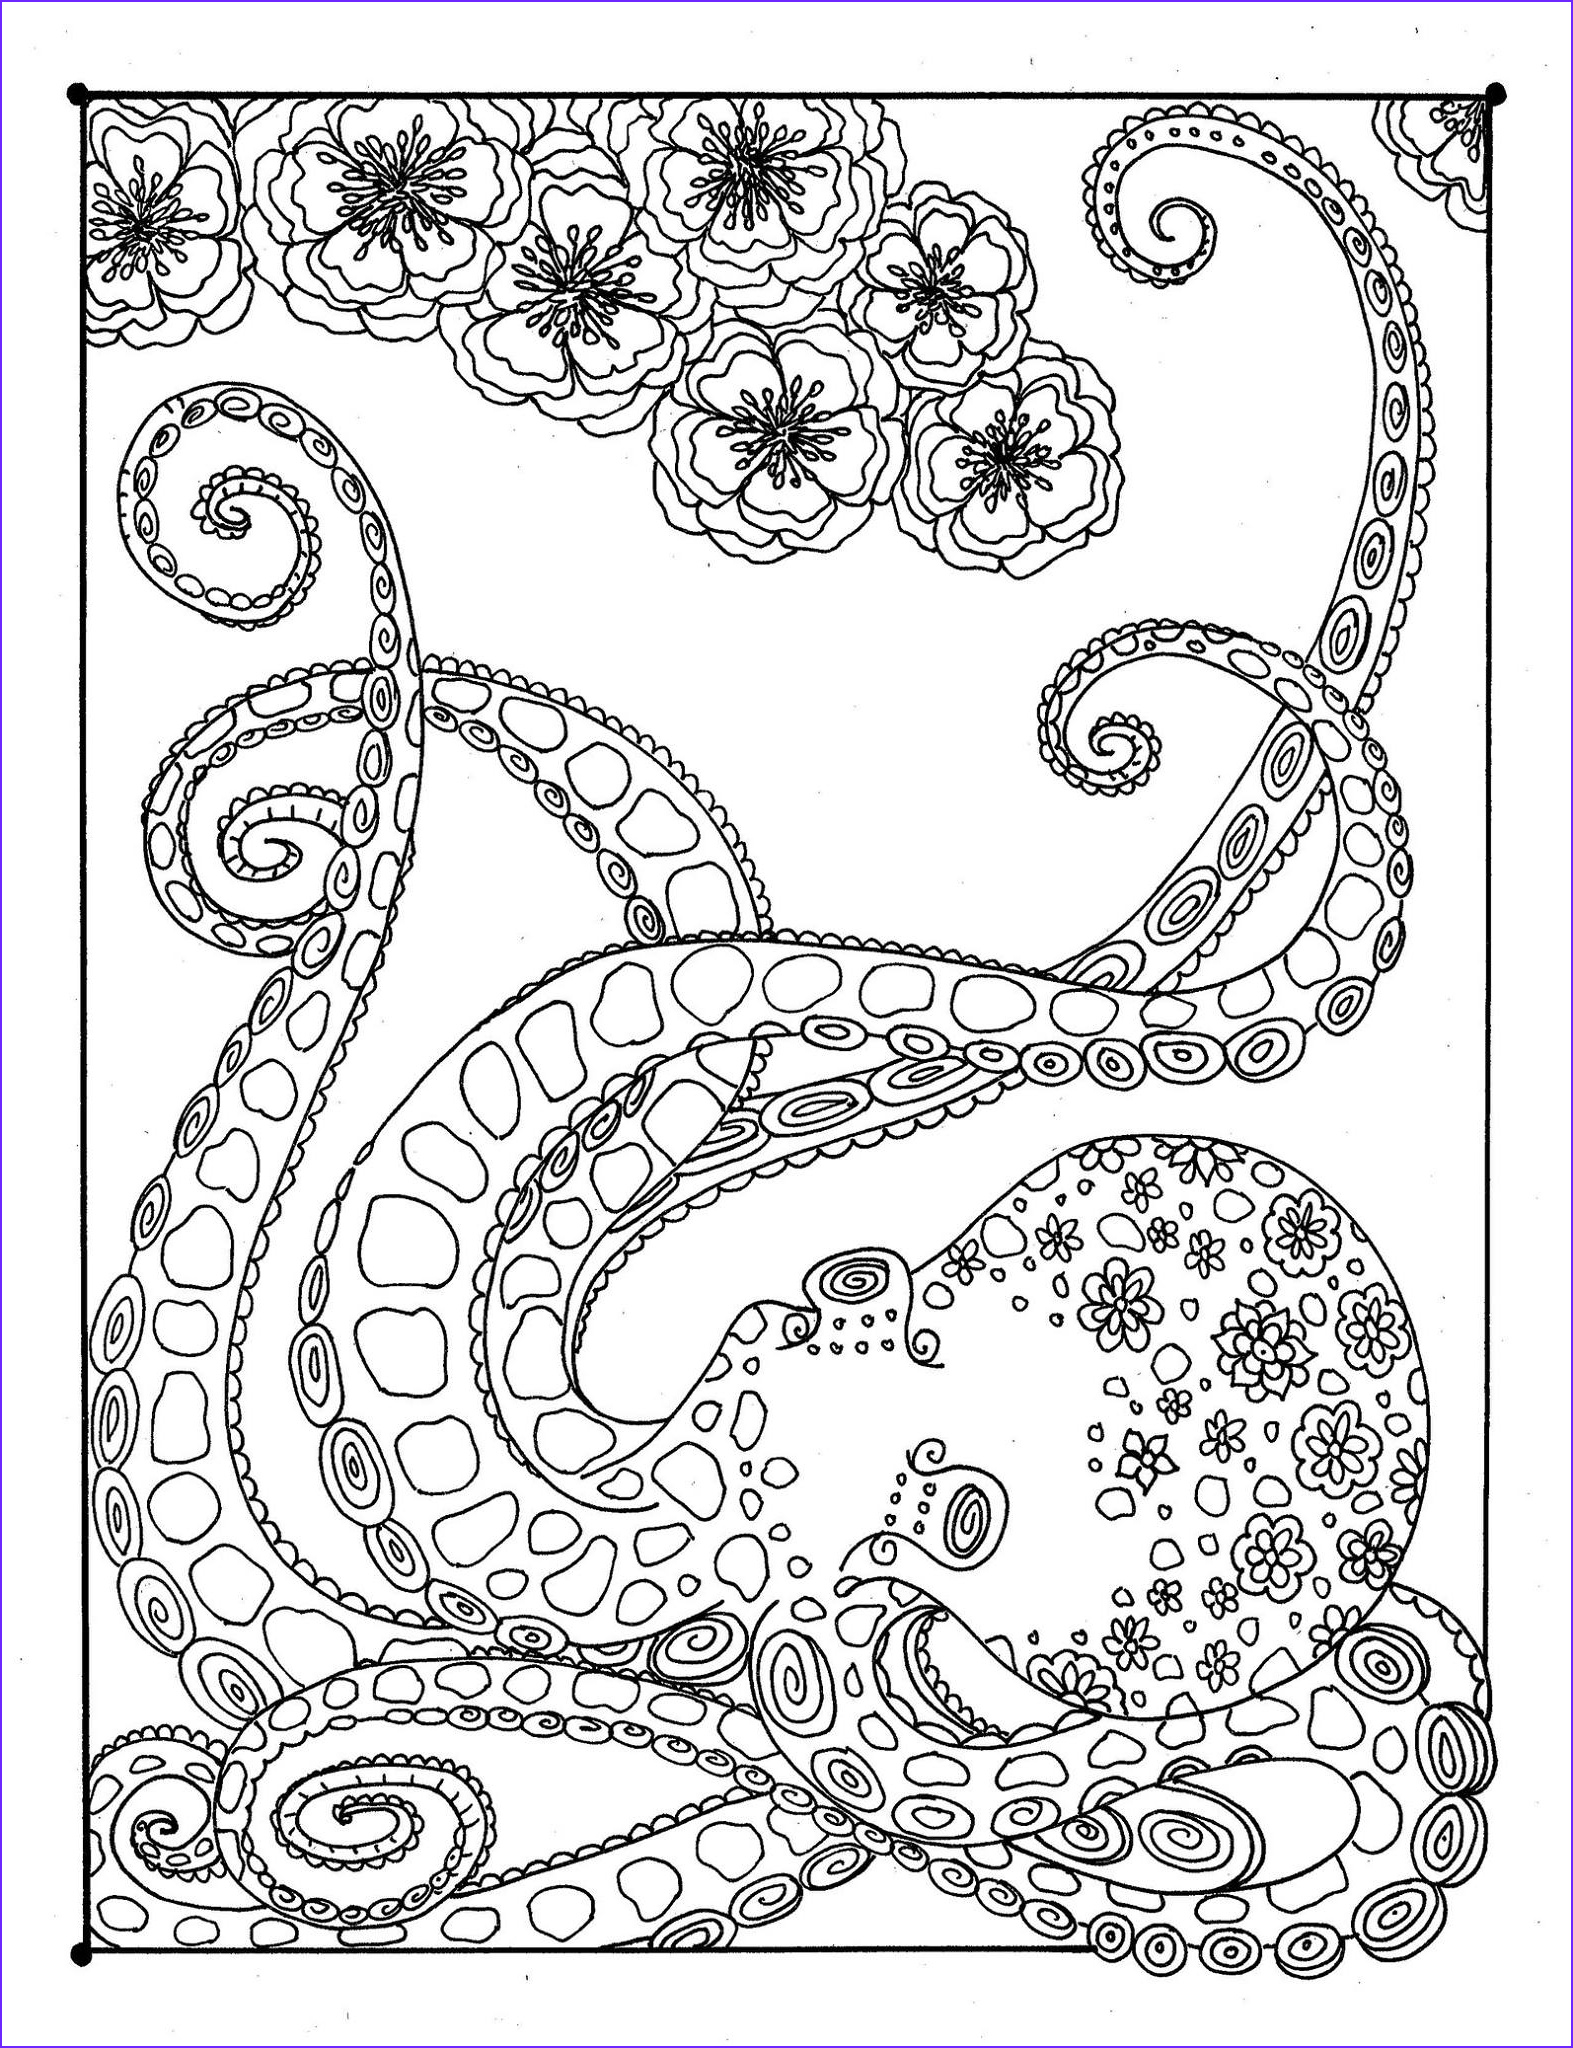 Coloring Page for Adults Printable Luxury Images Free Printable Abstract Coloring Pages for Adults